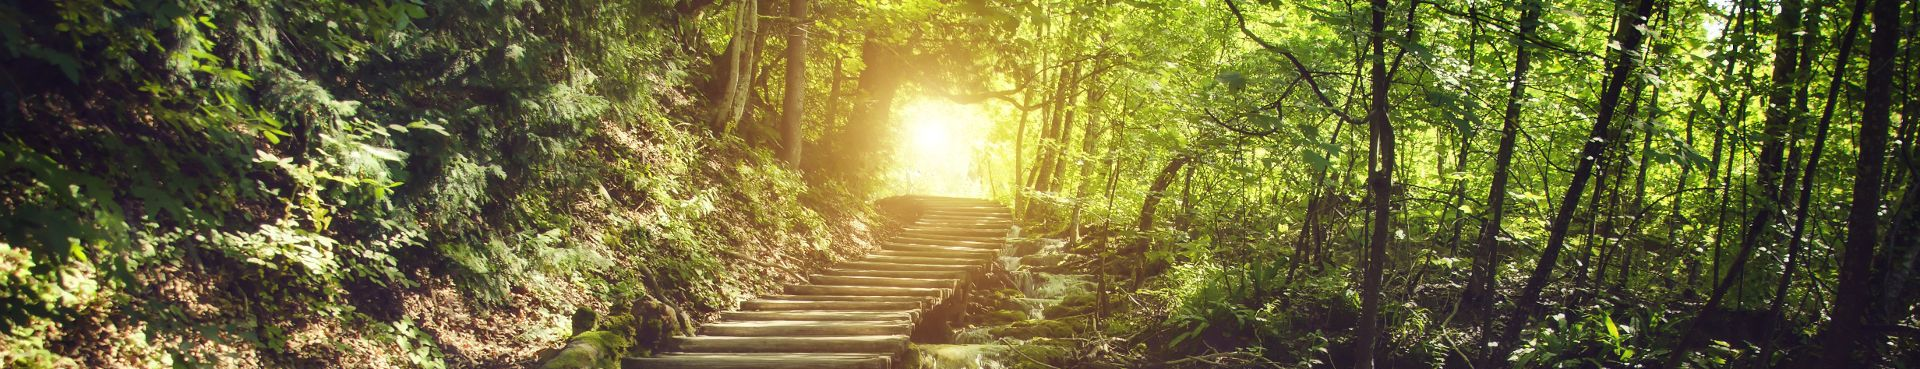 stairs on a forest path